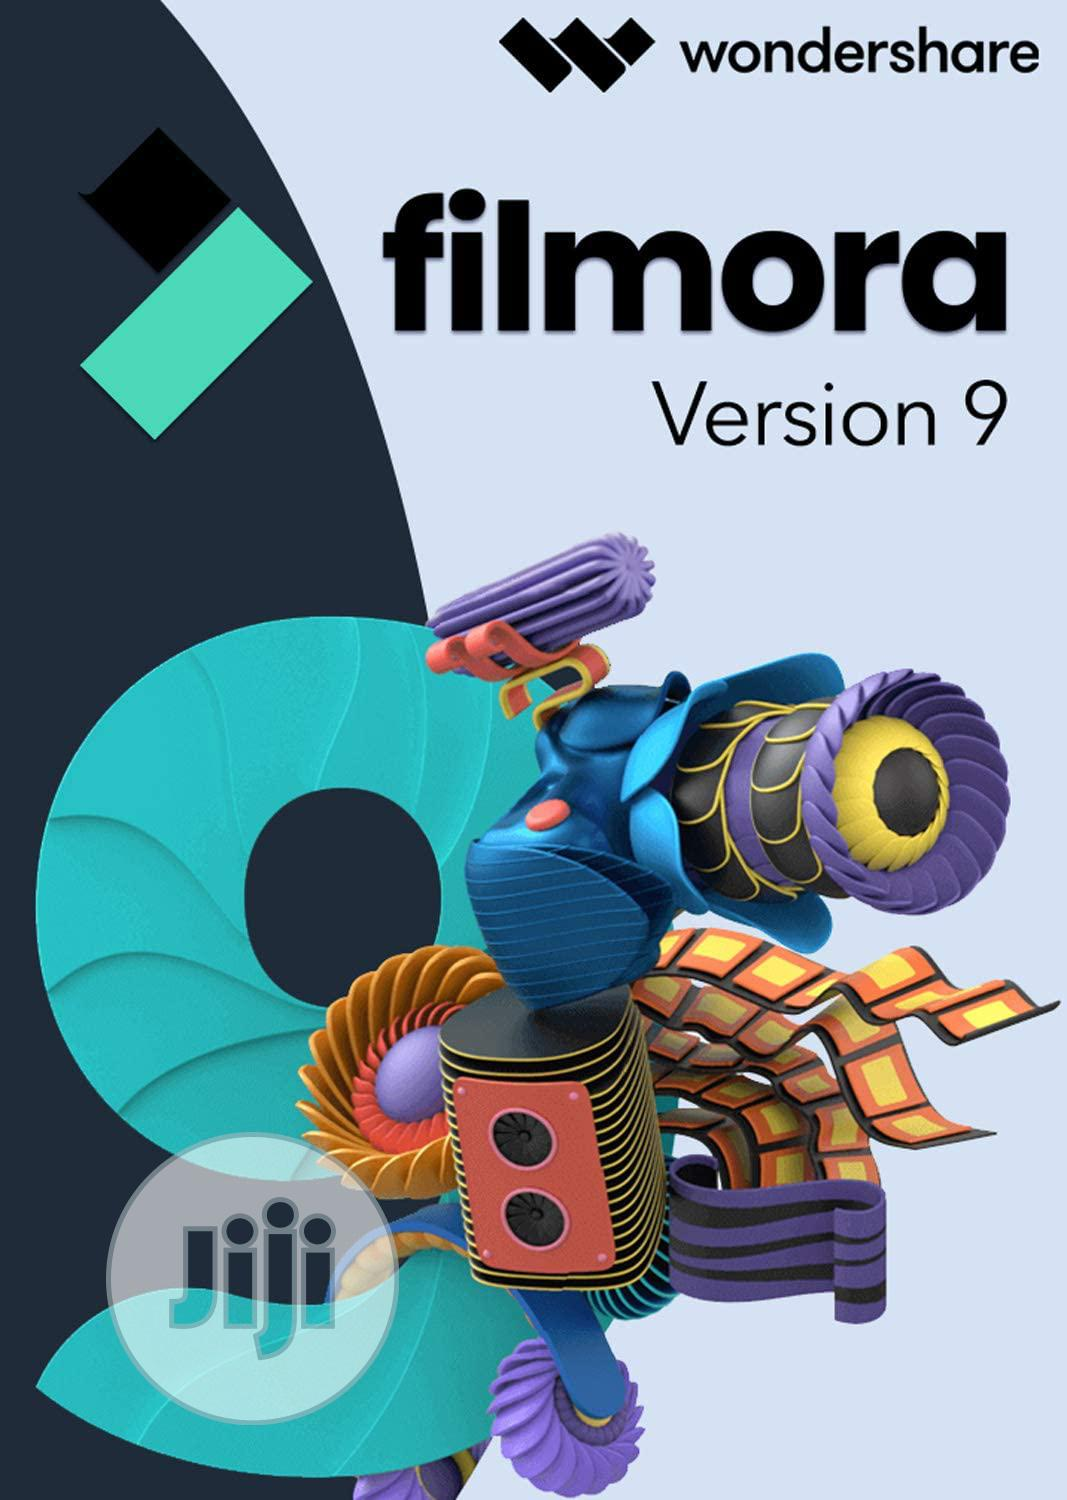 Wondershare Filmora 9 - Video Editing Software